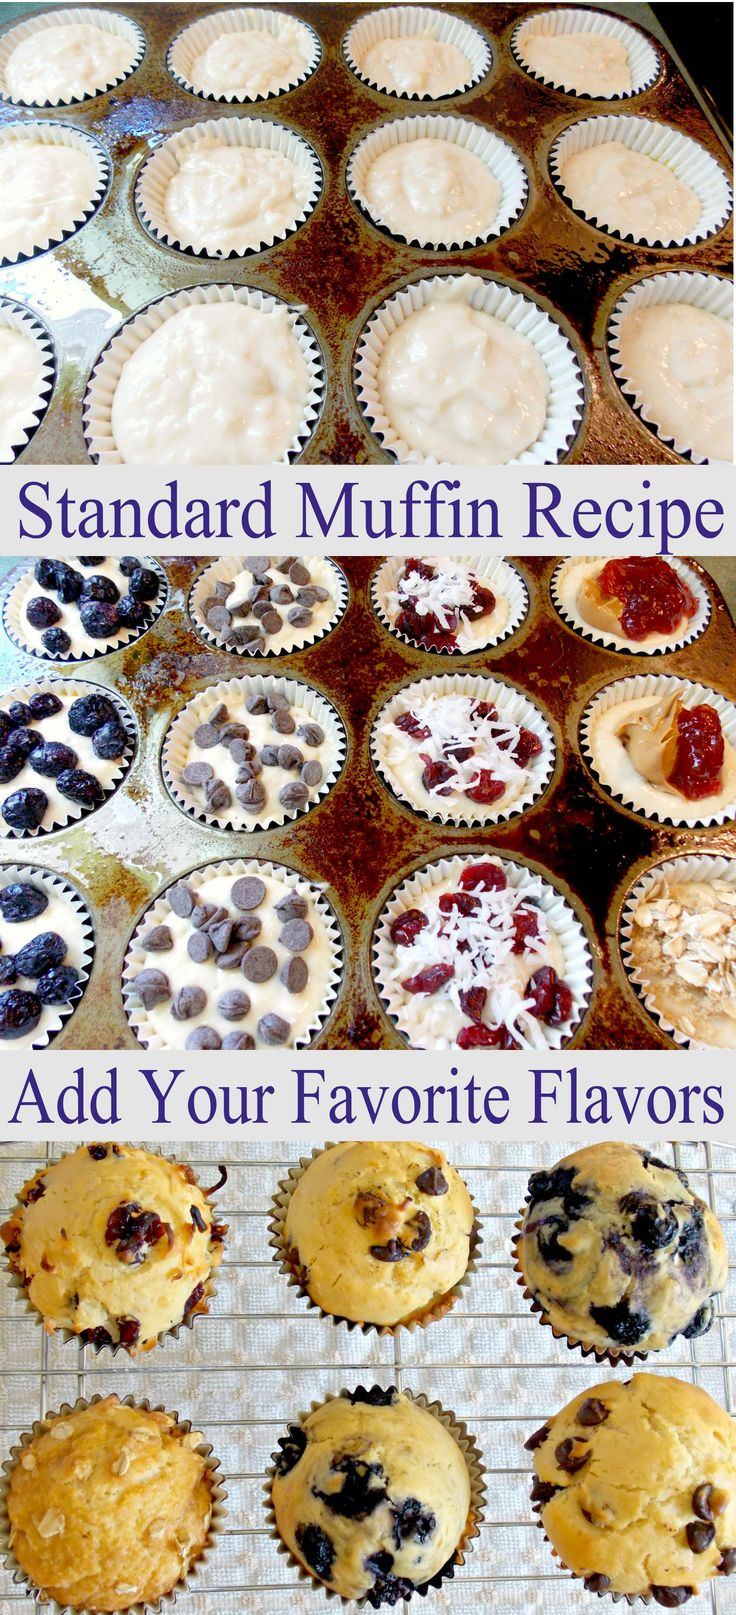 standard muffin recipe Ingredients      2 cups all-purpose flour     1 tbsp. baking powder     ½ tsp. salt     ½ cup granulated sugar     1 cup skim milk (or whatever milk you have)     1 tsp. vanilla extract     1 large egg     ¼ cup canola or vegetable oil     cooking spray